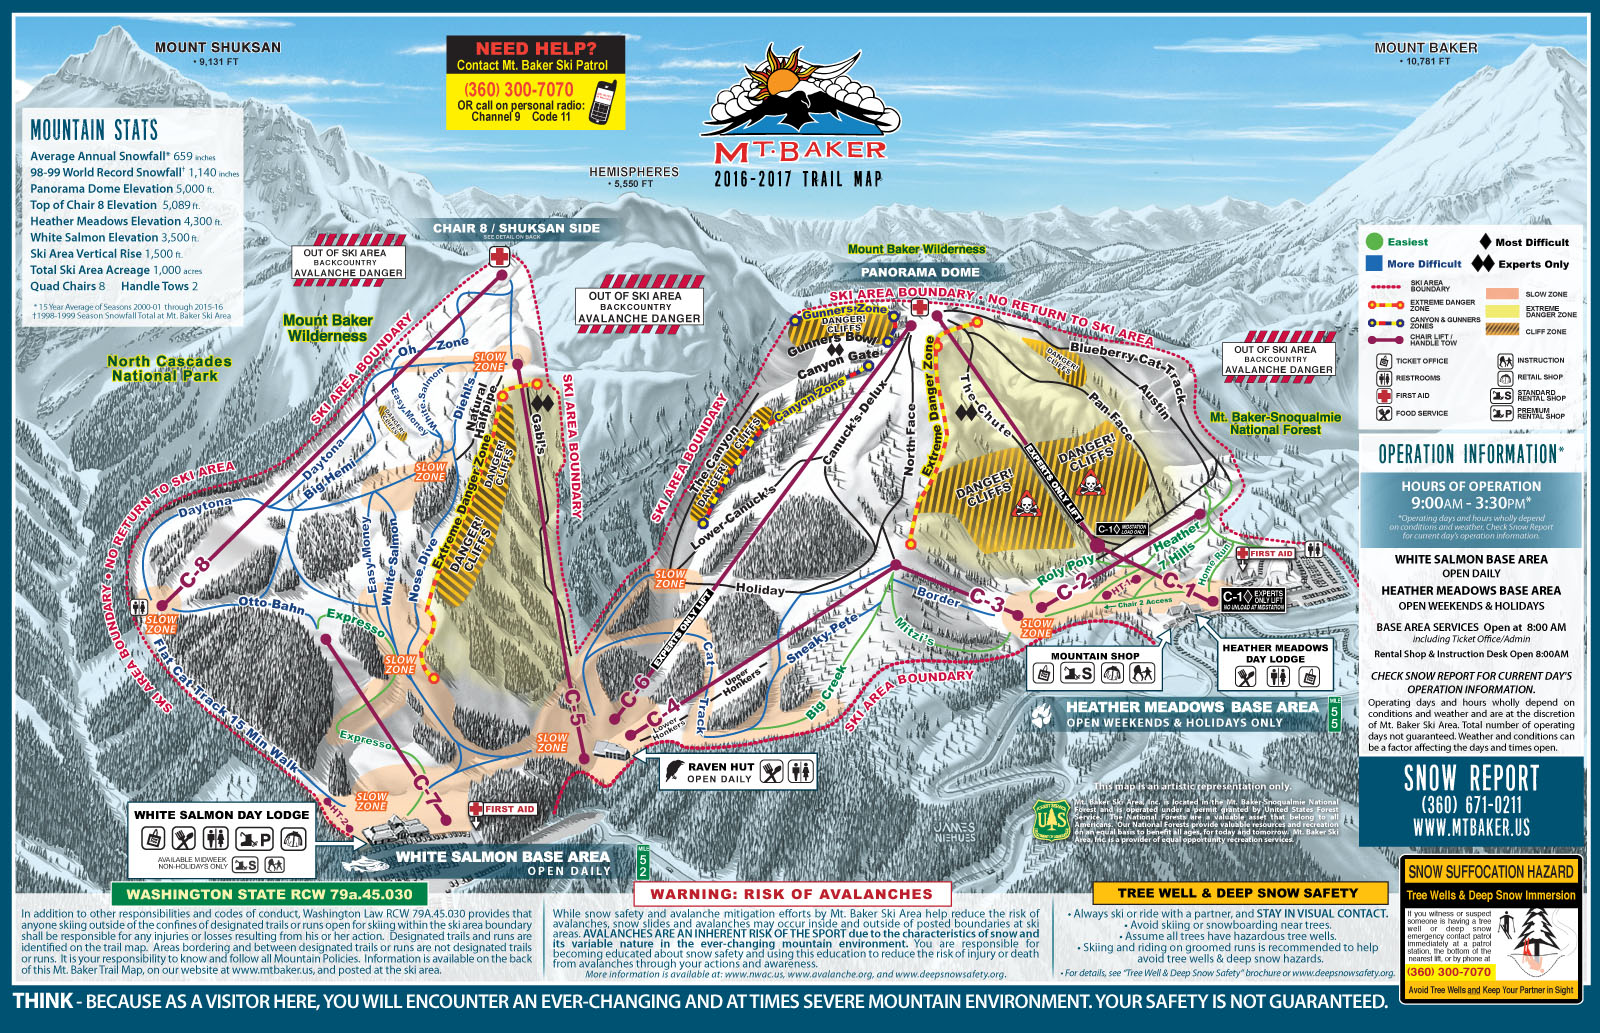 Mount Baker Piste / Trail Map